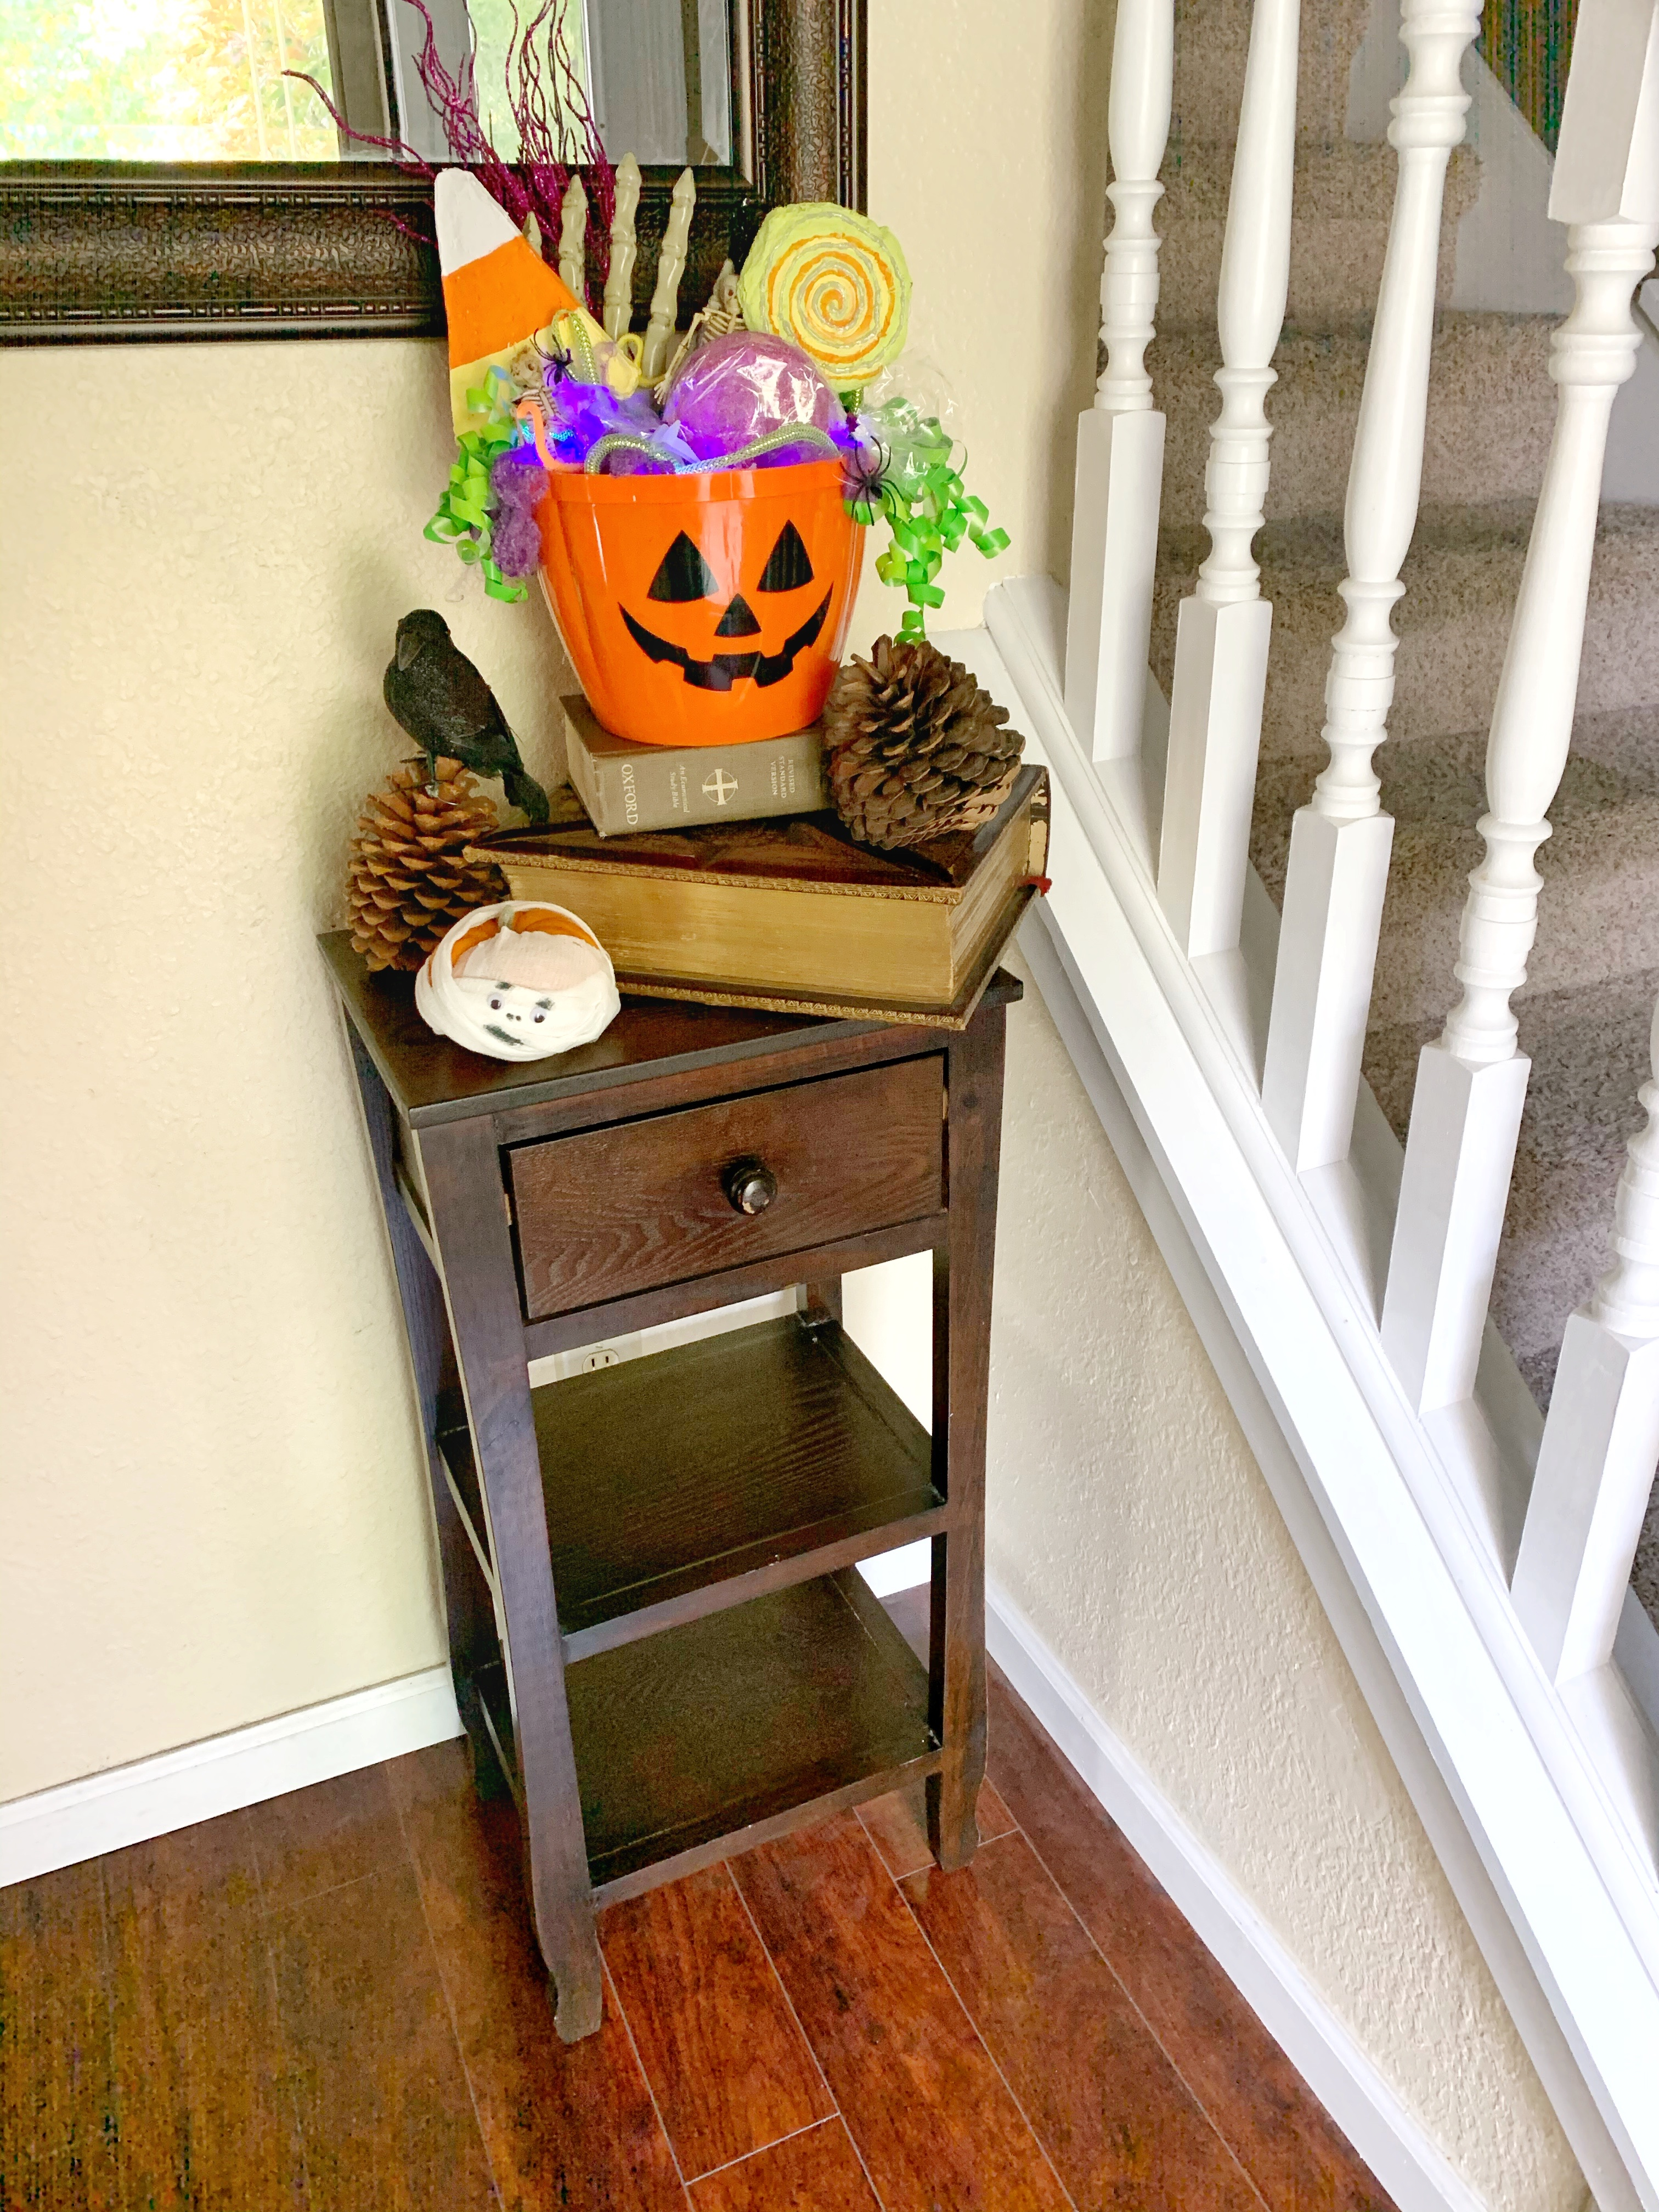 Finished candy bucket in my entry way